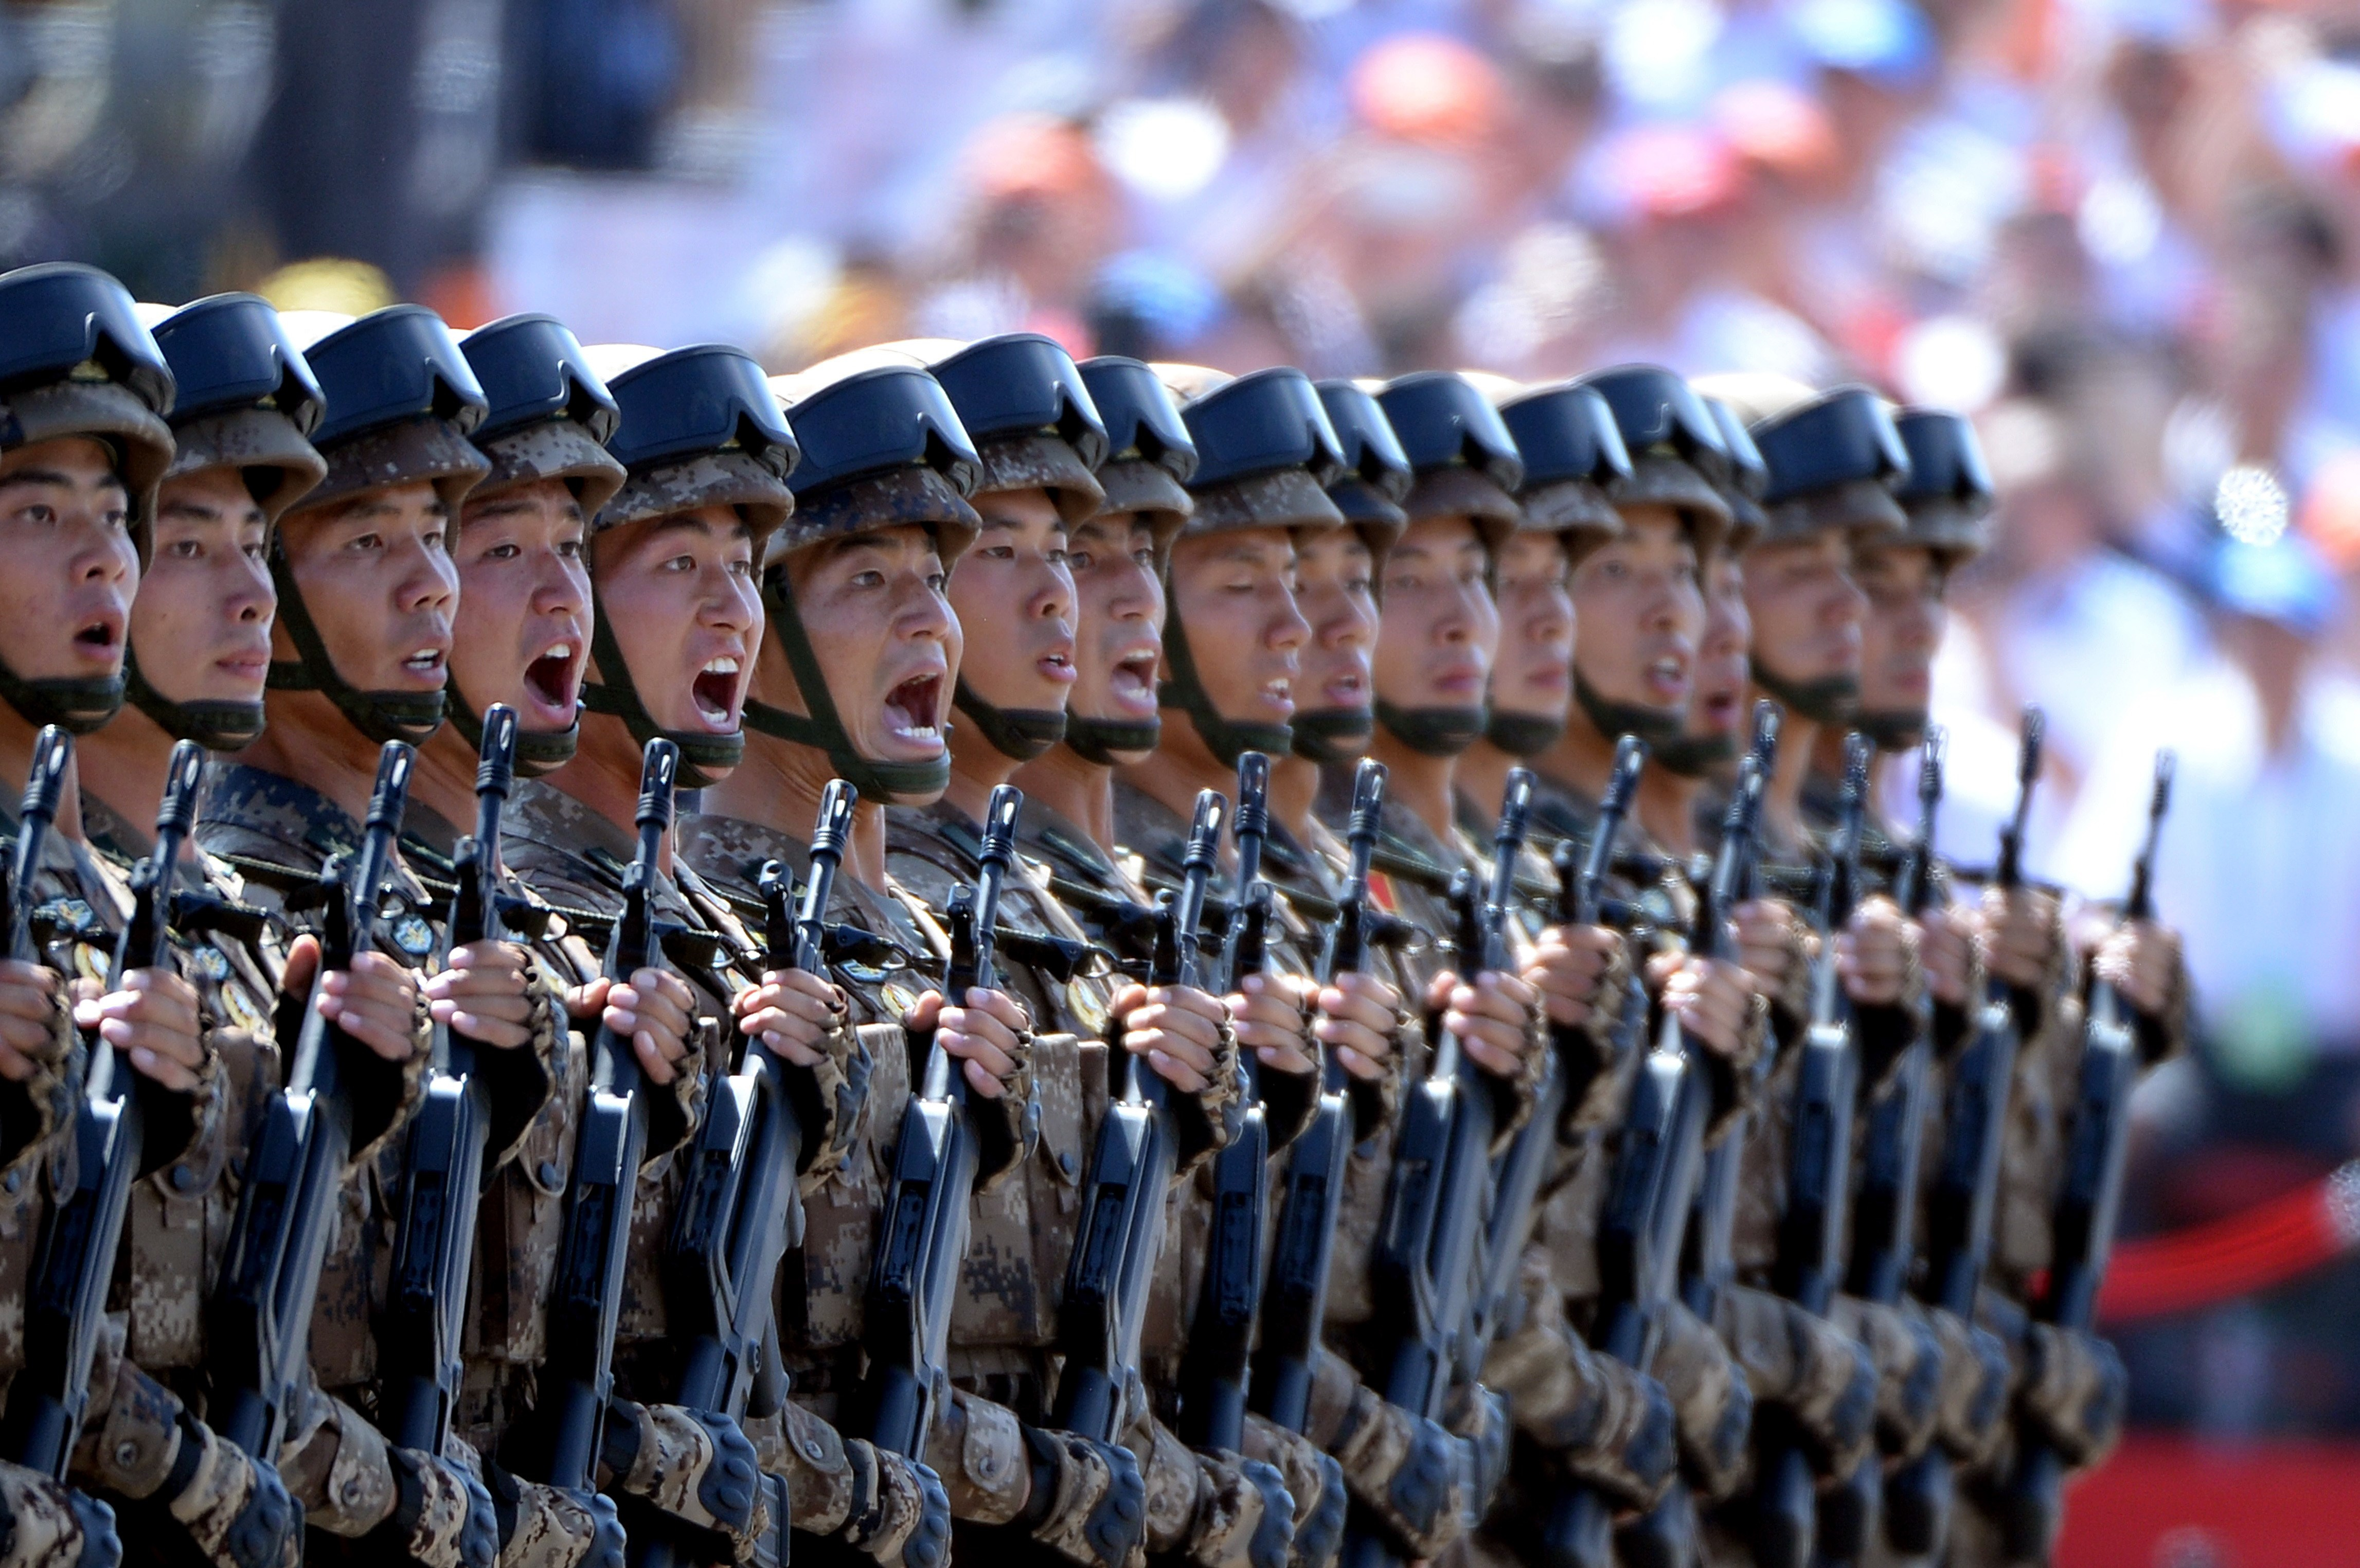 China's Military Reform: Politics by Another Name